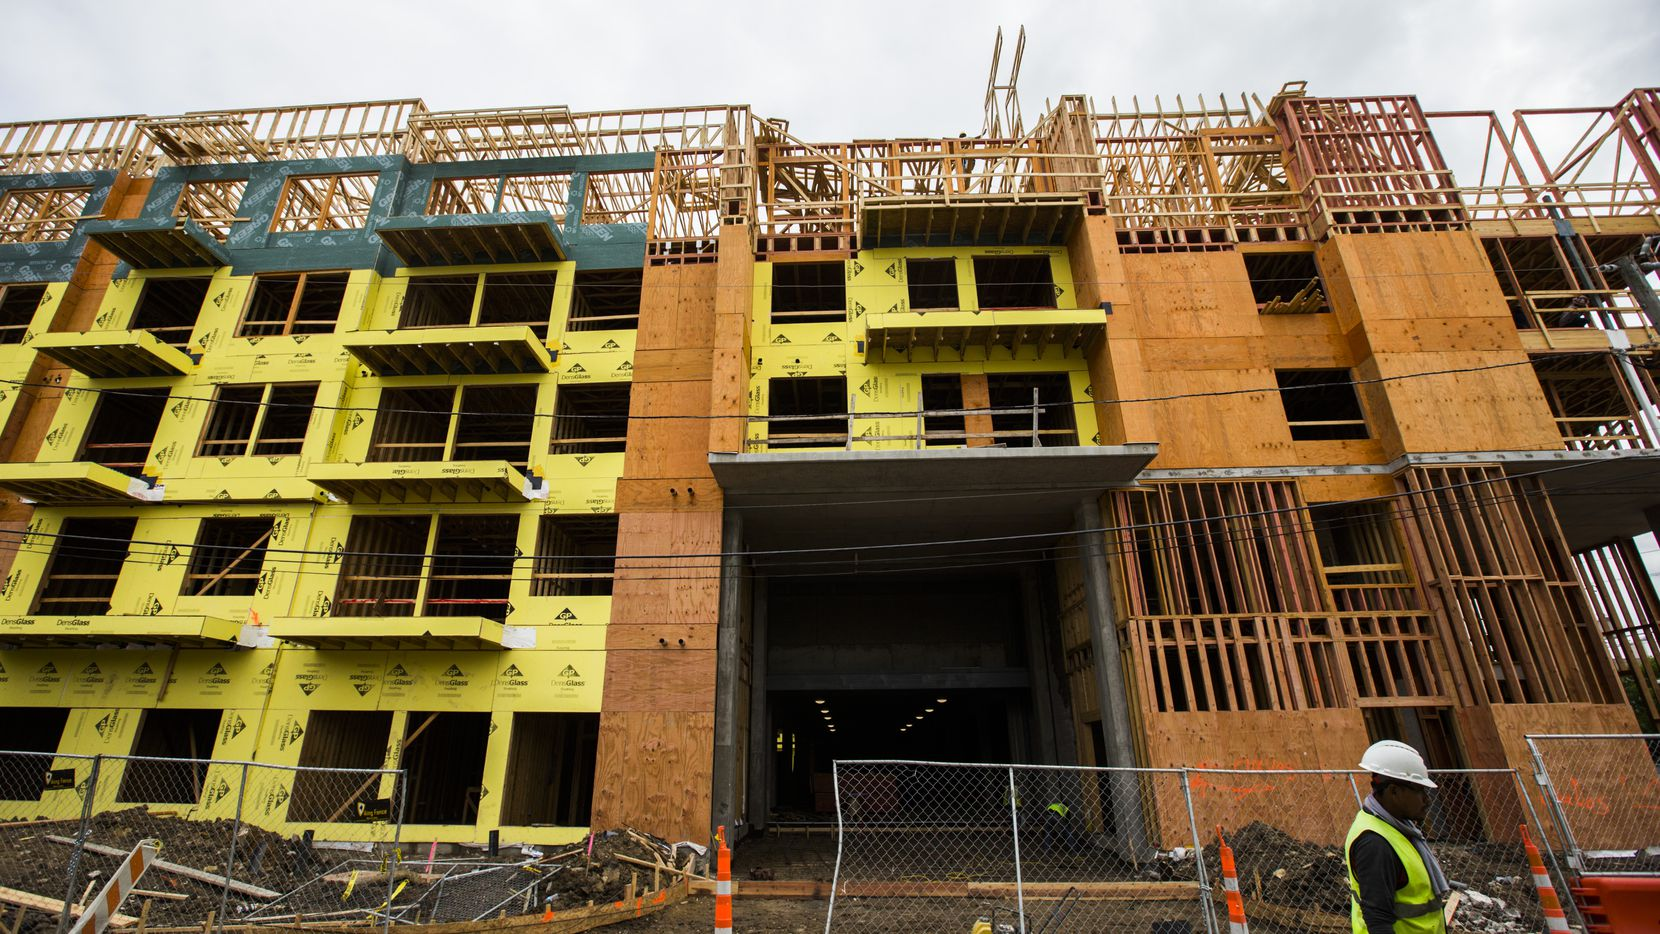 At the end of 2020, permits for multifamily residential construction in North Texas was down more than 40% from 2019.